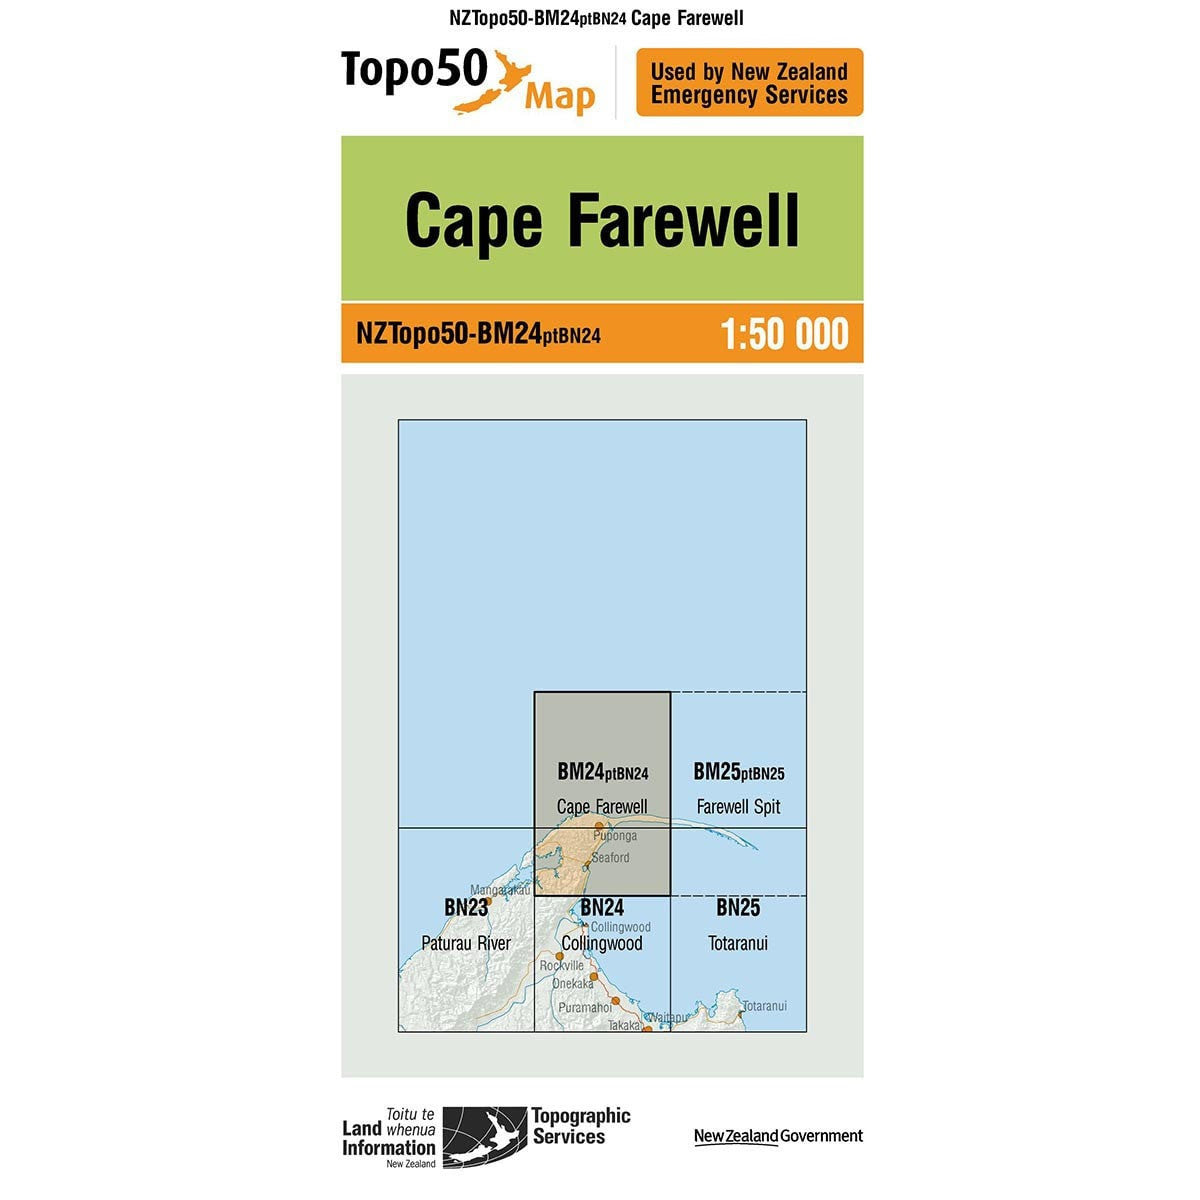 Buy Topo50 BM24 Cape Farewell NZ | NZ's Best Trail Running and Crossfit | Highbeam.co.nz - Get out there and go for a run!